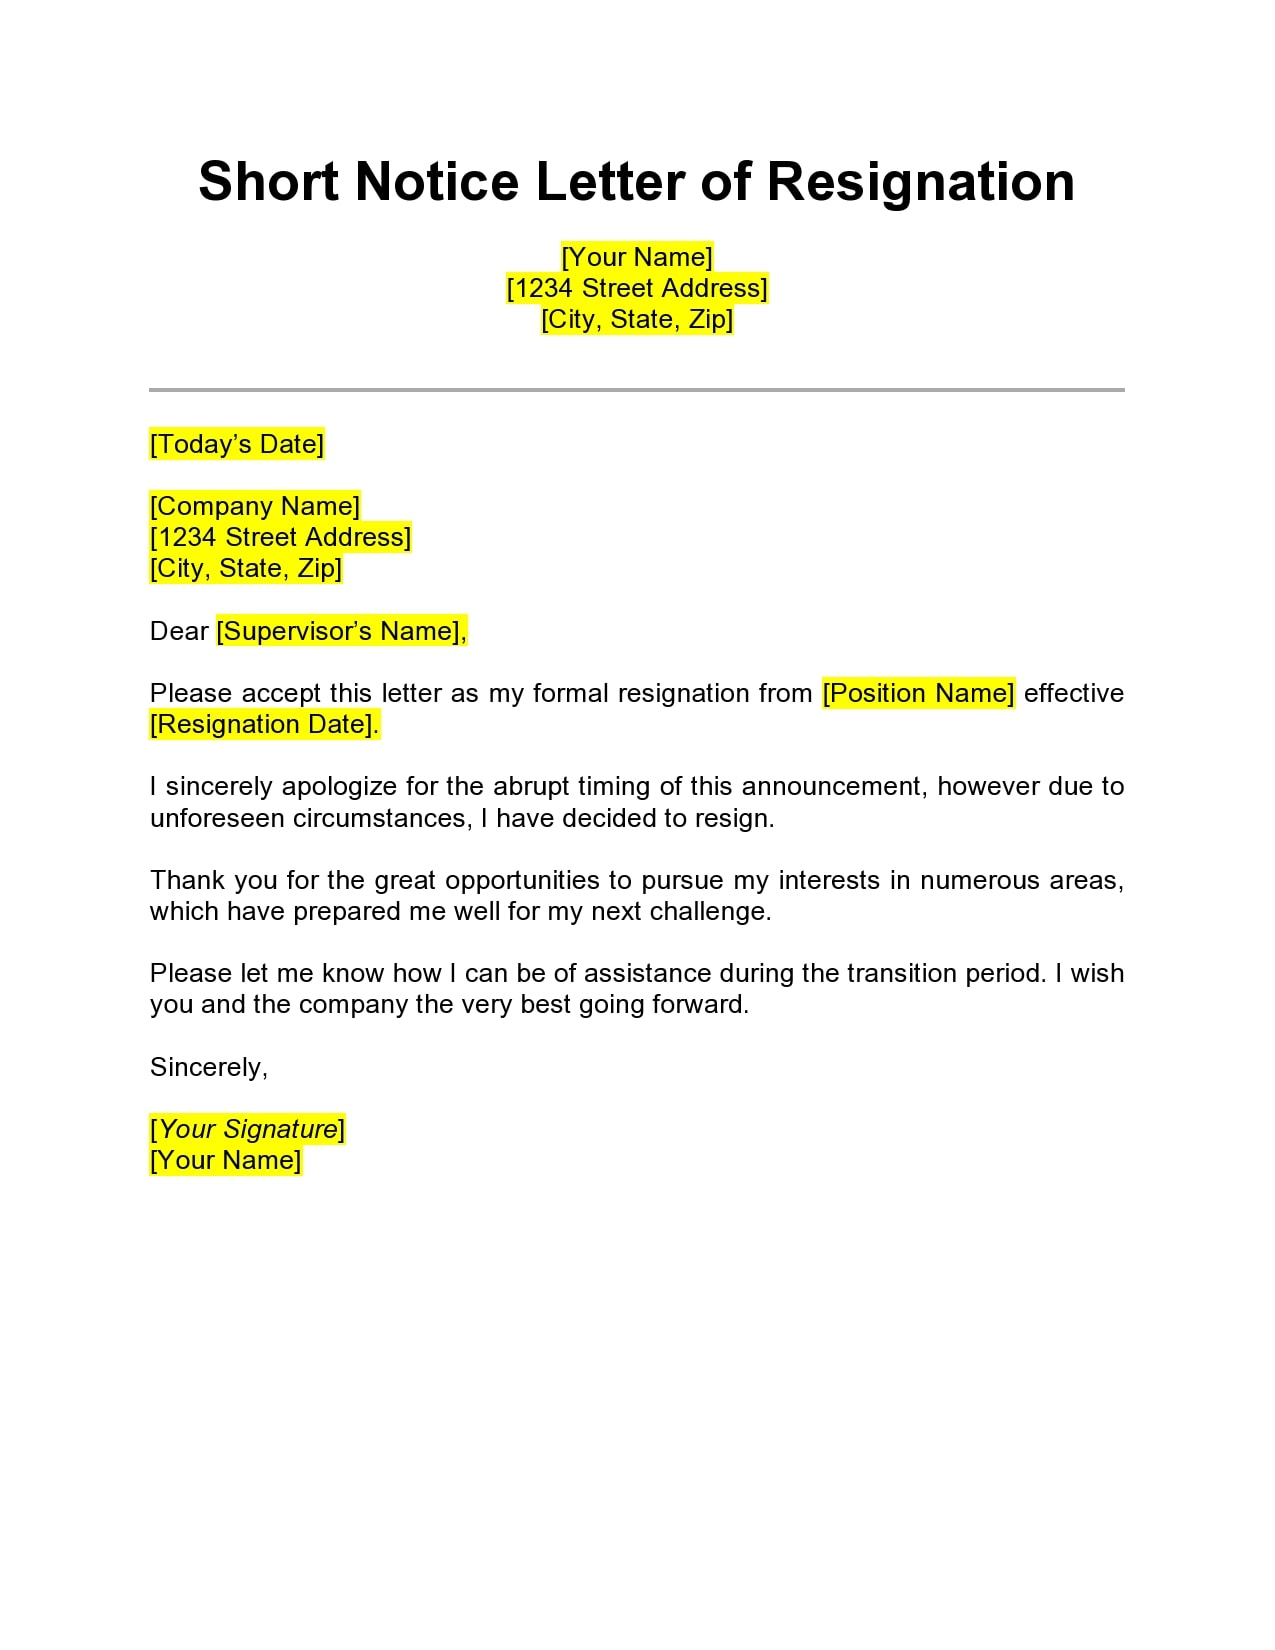 short notice resignation letter 04